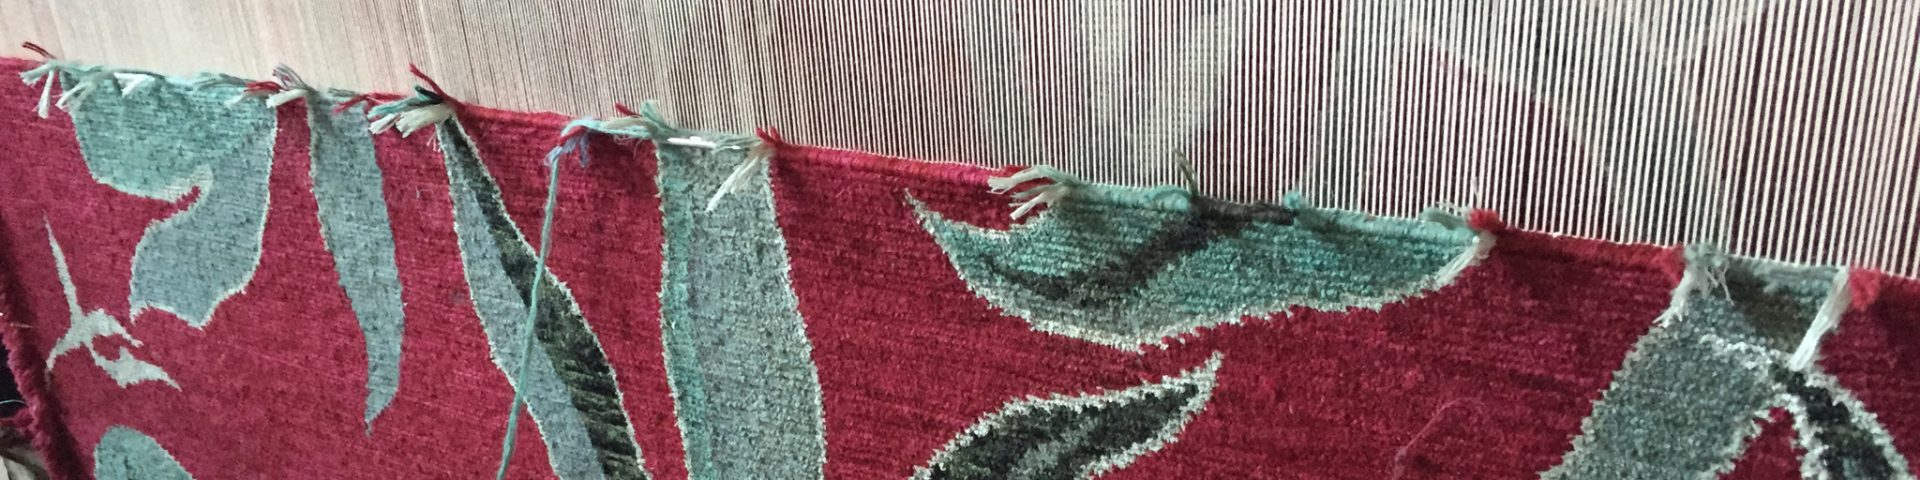 'Camara' in colour 'Oxblood' by New Moon shown on loom in Nepal. | Image courtesy of The Ruggist.